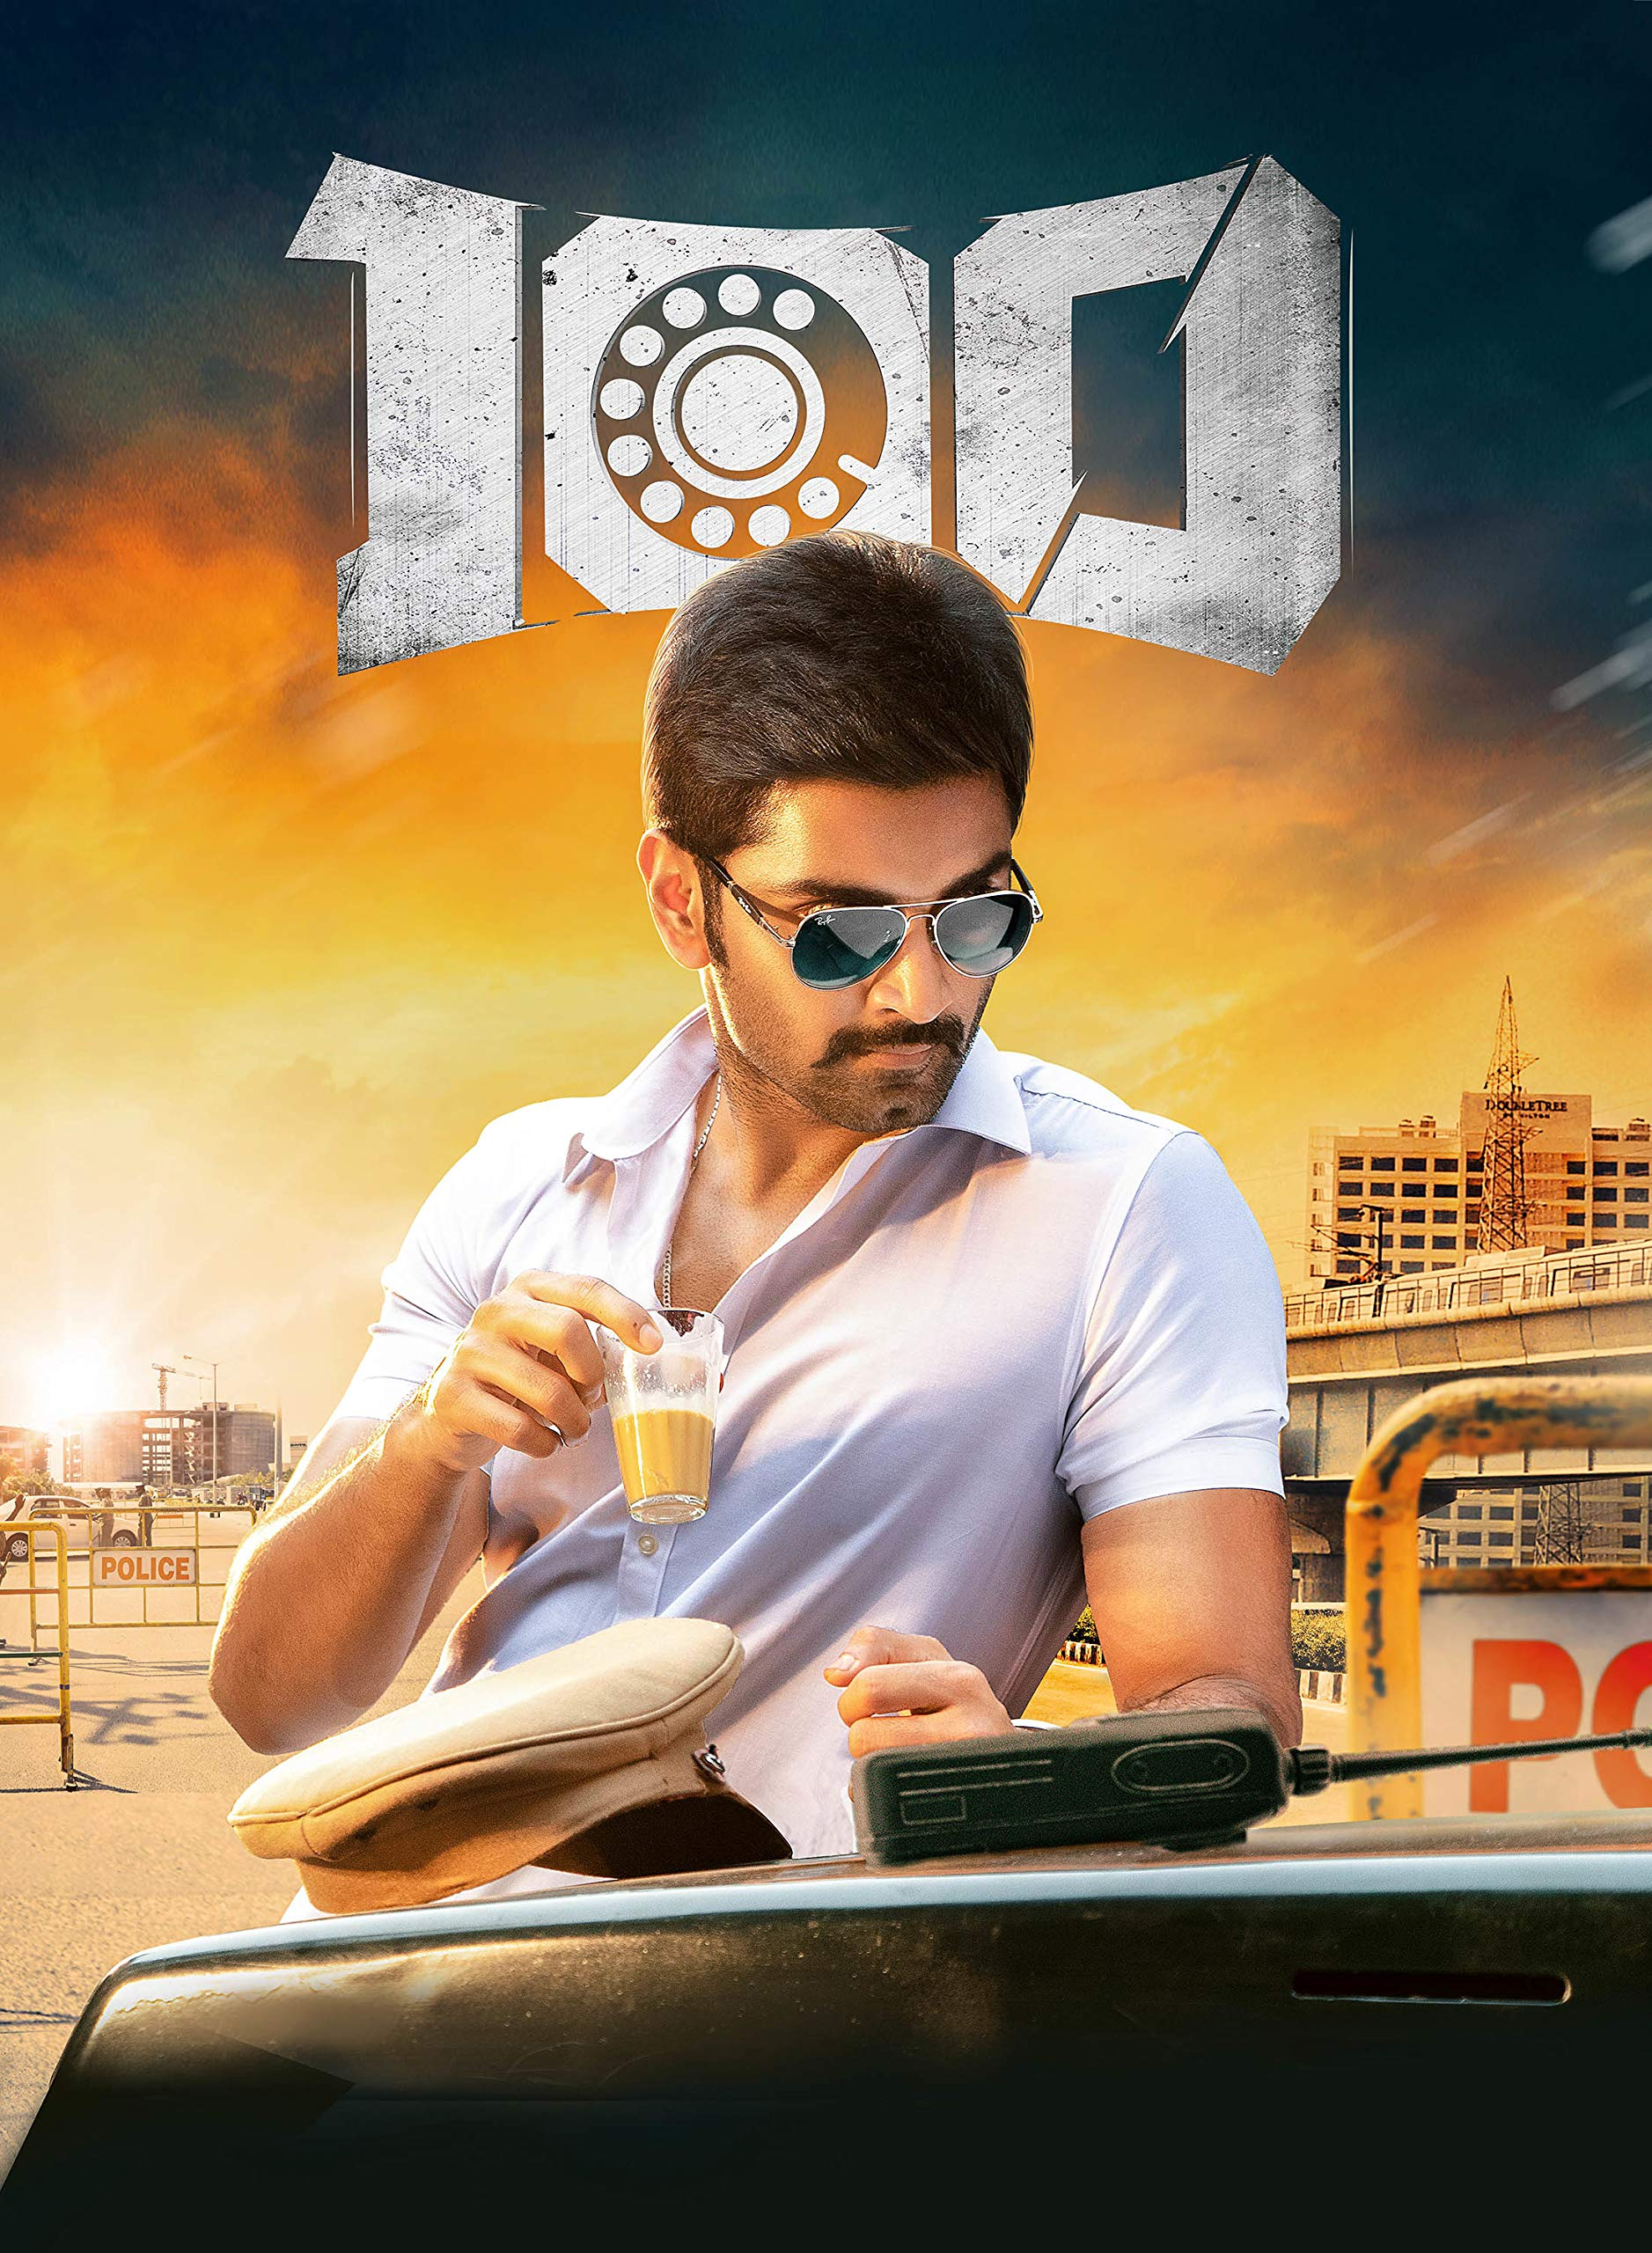 100 (2019) Hindi Dual Audio 1080p UNCUT HDRip x264 ESubs 2.8GB Download